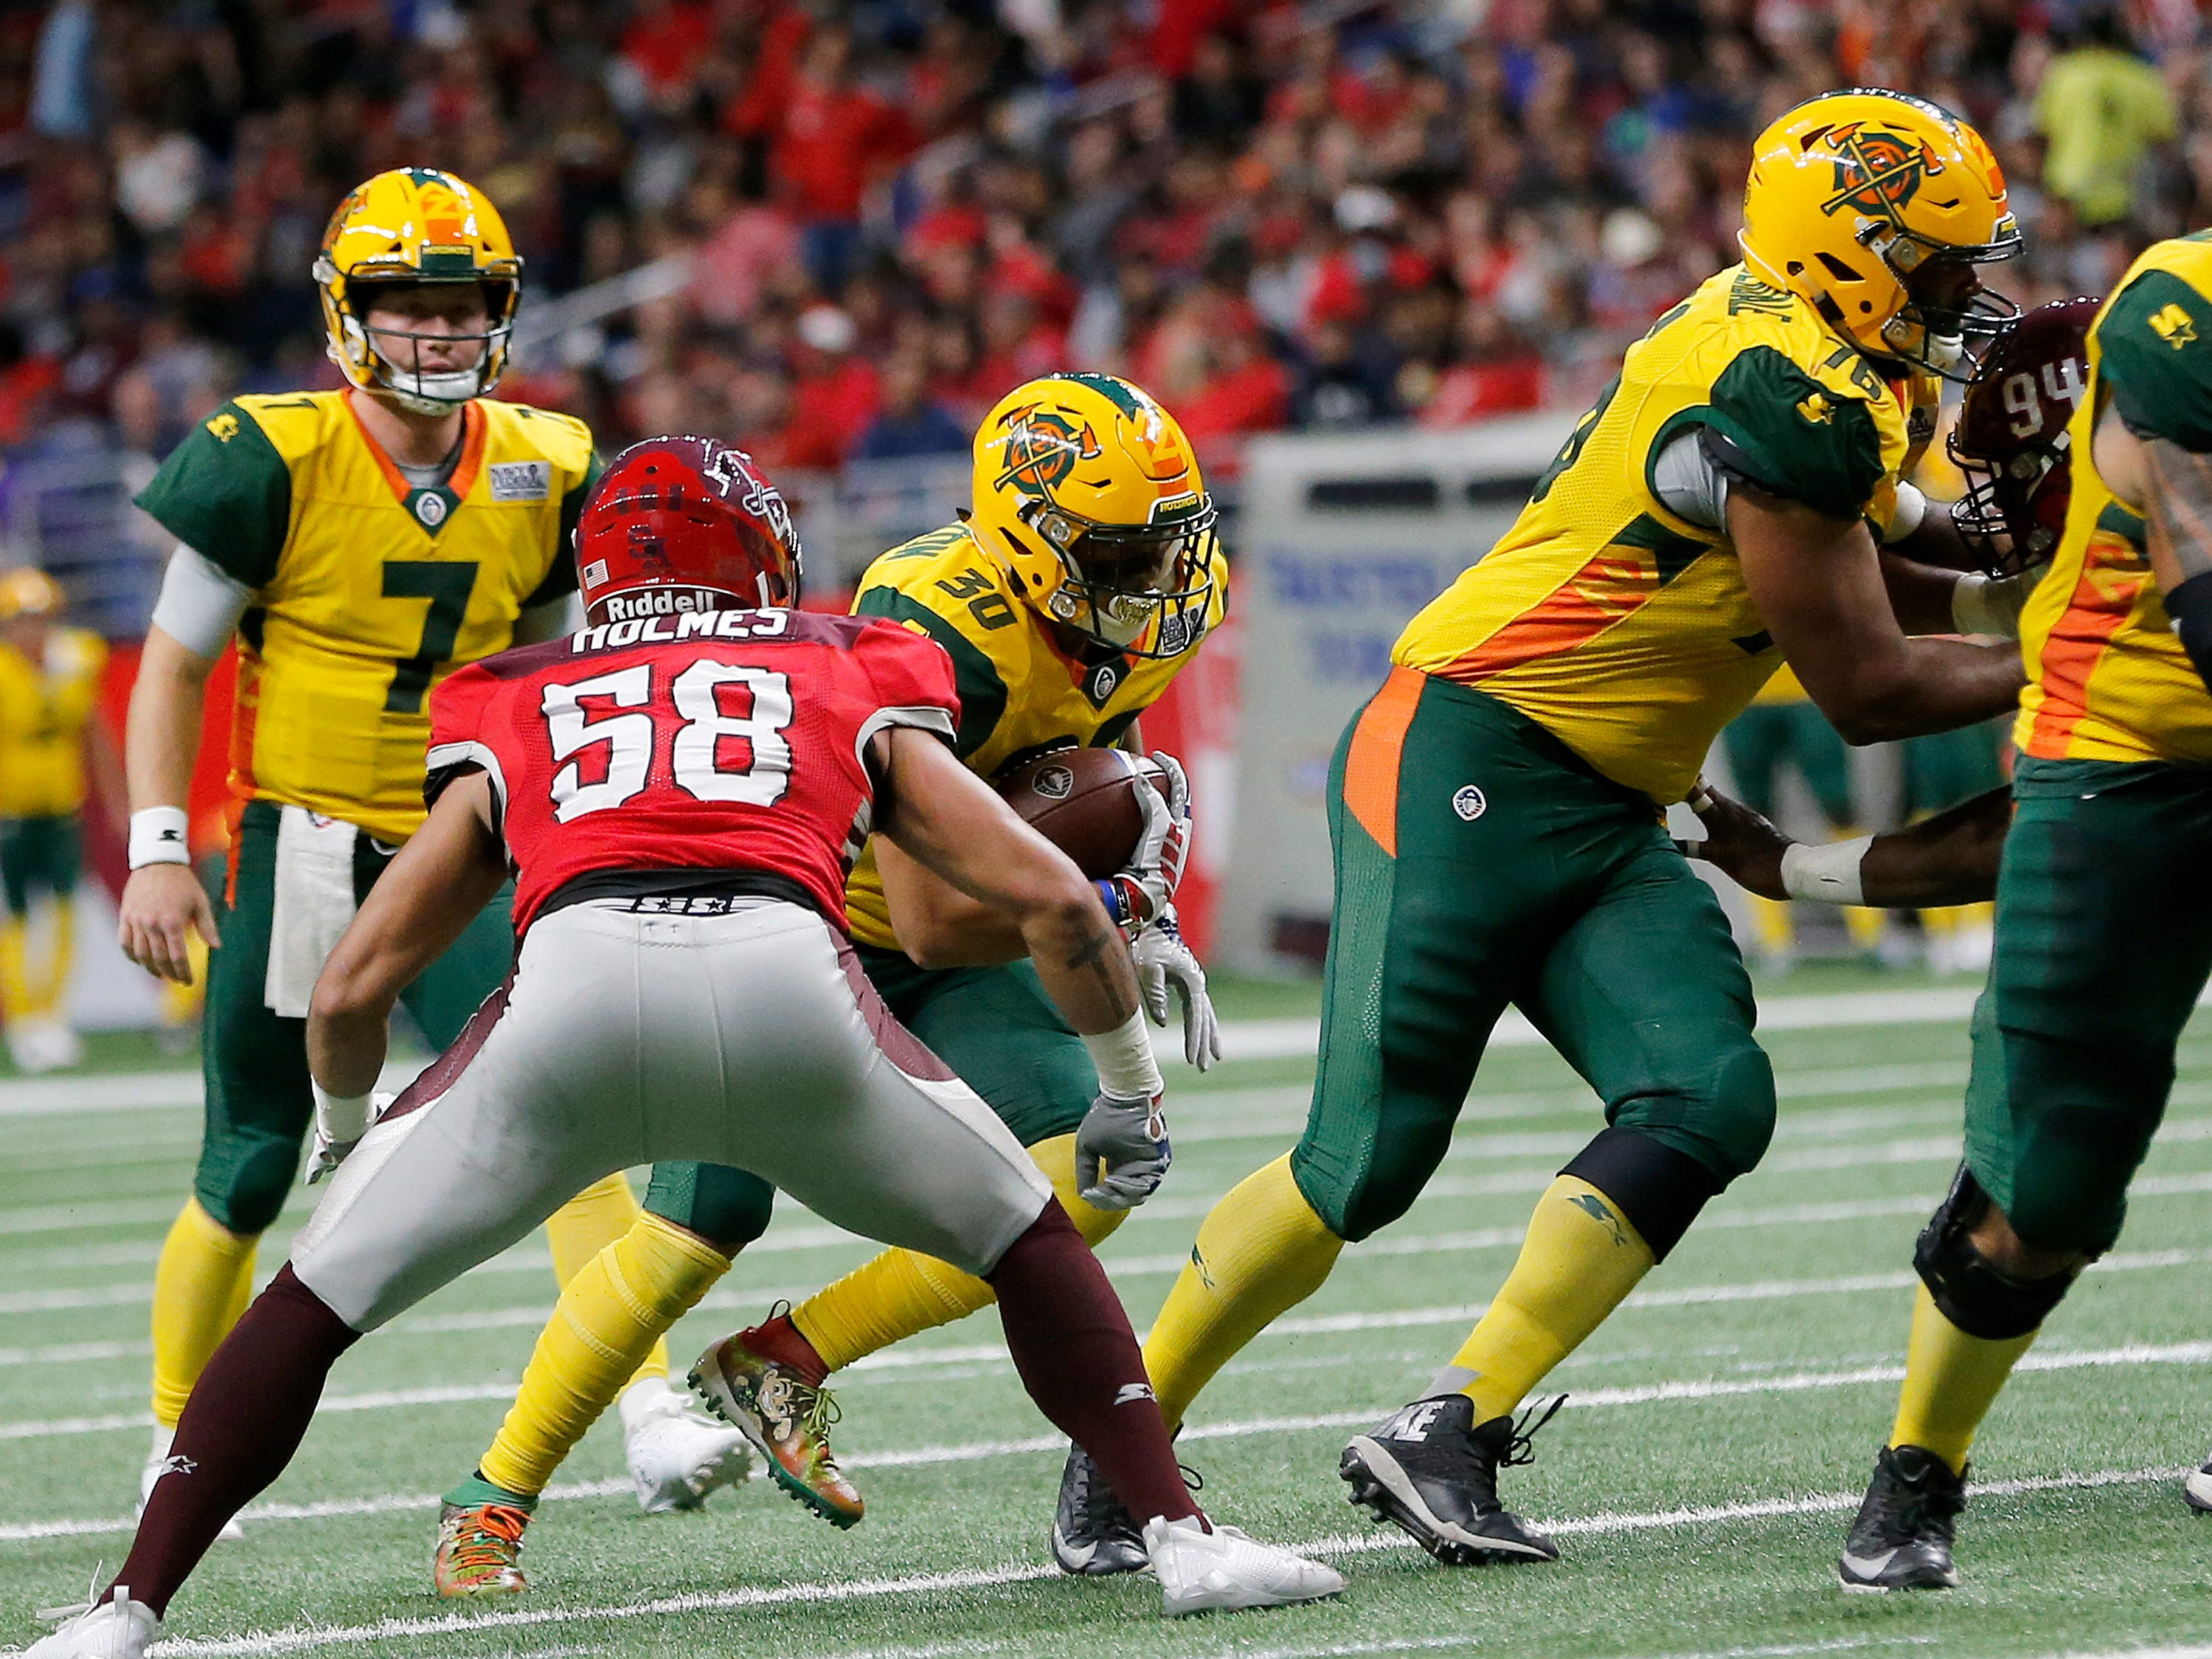 Arizona Hot Shots running back Justin Stockton (30) runs with the ball in the first half during an Arizona Hotshots at San Antonio Commanders AAF football game, Sunday, March 31, 2019, at the Alamodome in San Antonio.